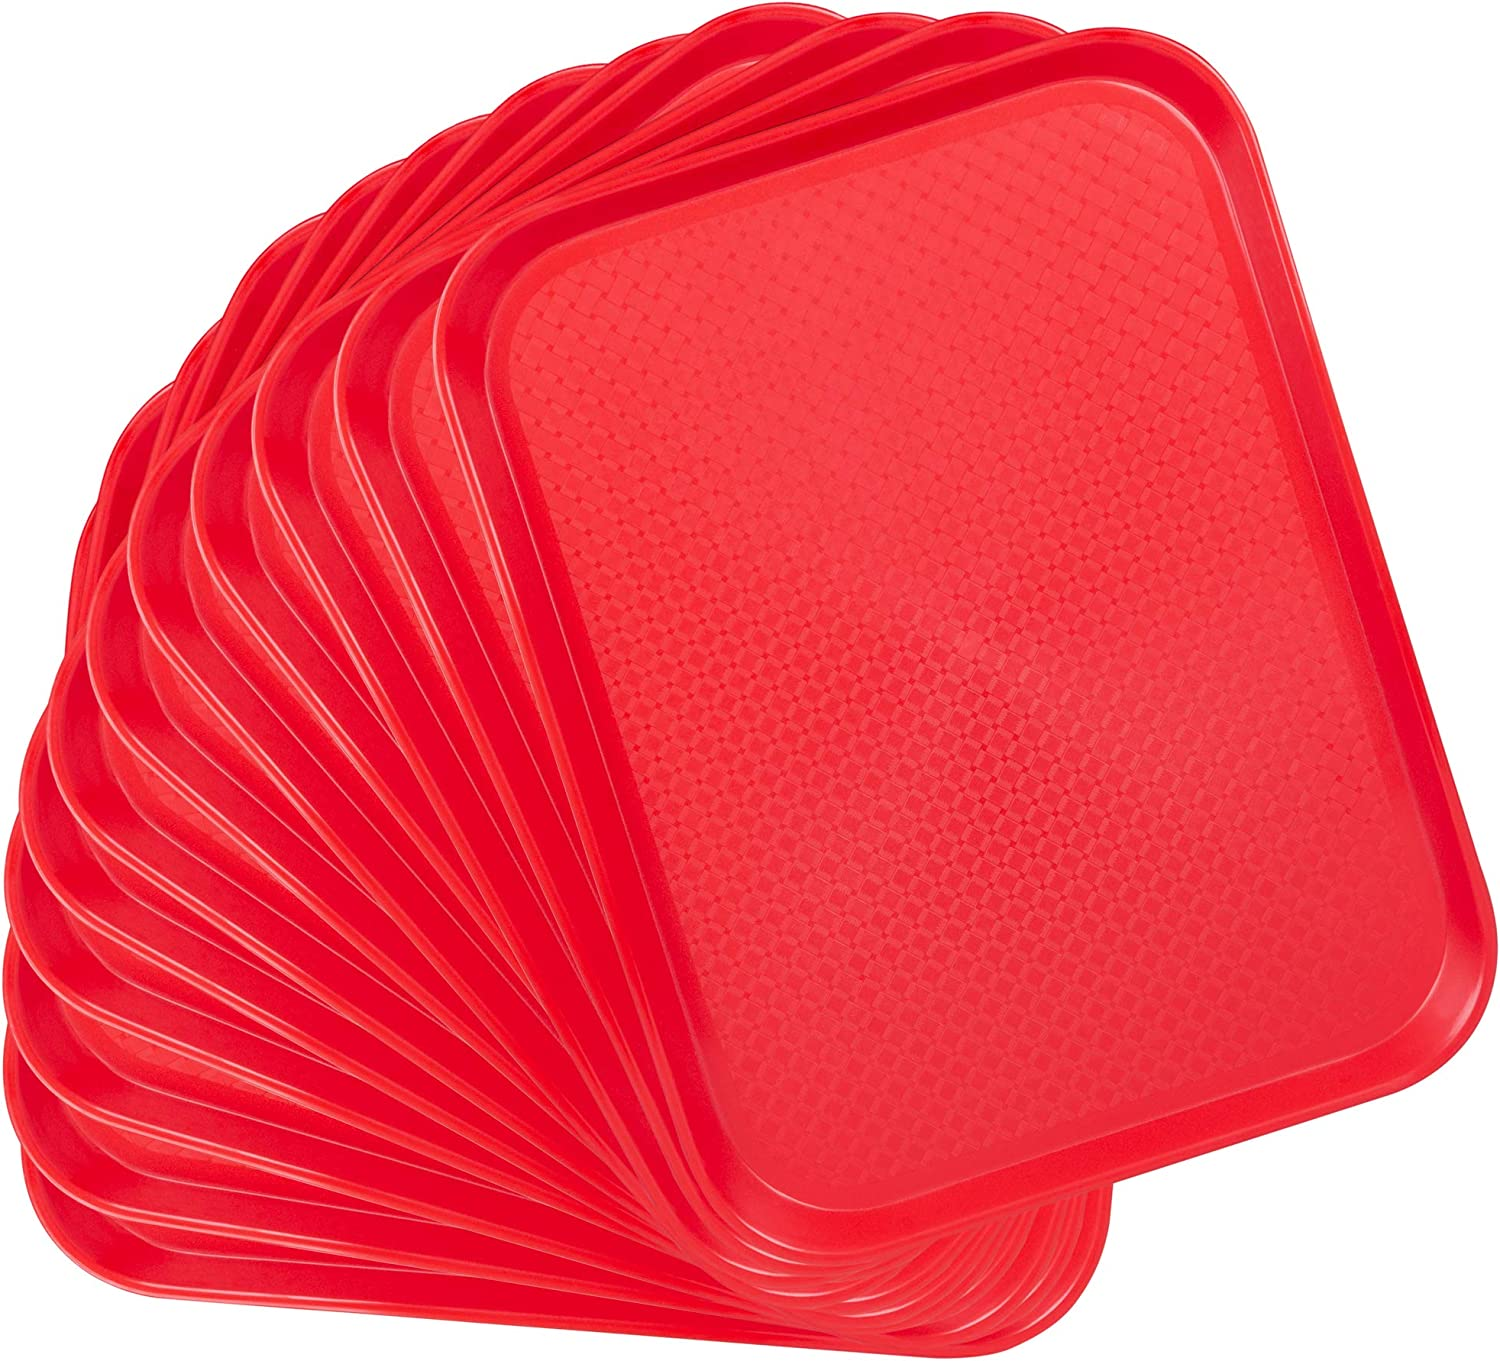 12-pack Fast Food Cafeteria Tray | Twelve 14 x 18 Rectangular Textured Plastic Food Serving TV Tray Multipack | School Lunch, Diner, Commercial Kitchen Restaurant Equipment (Red)